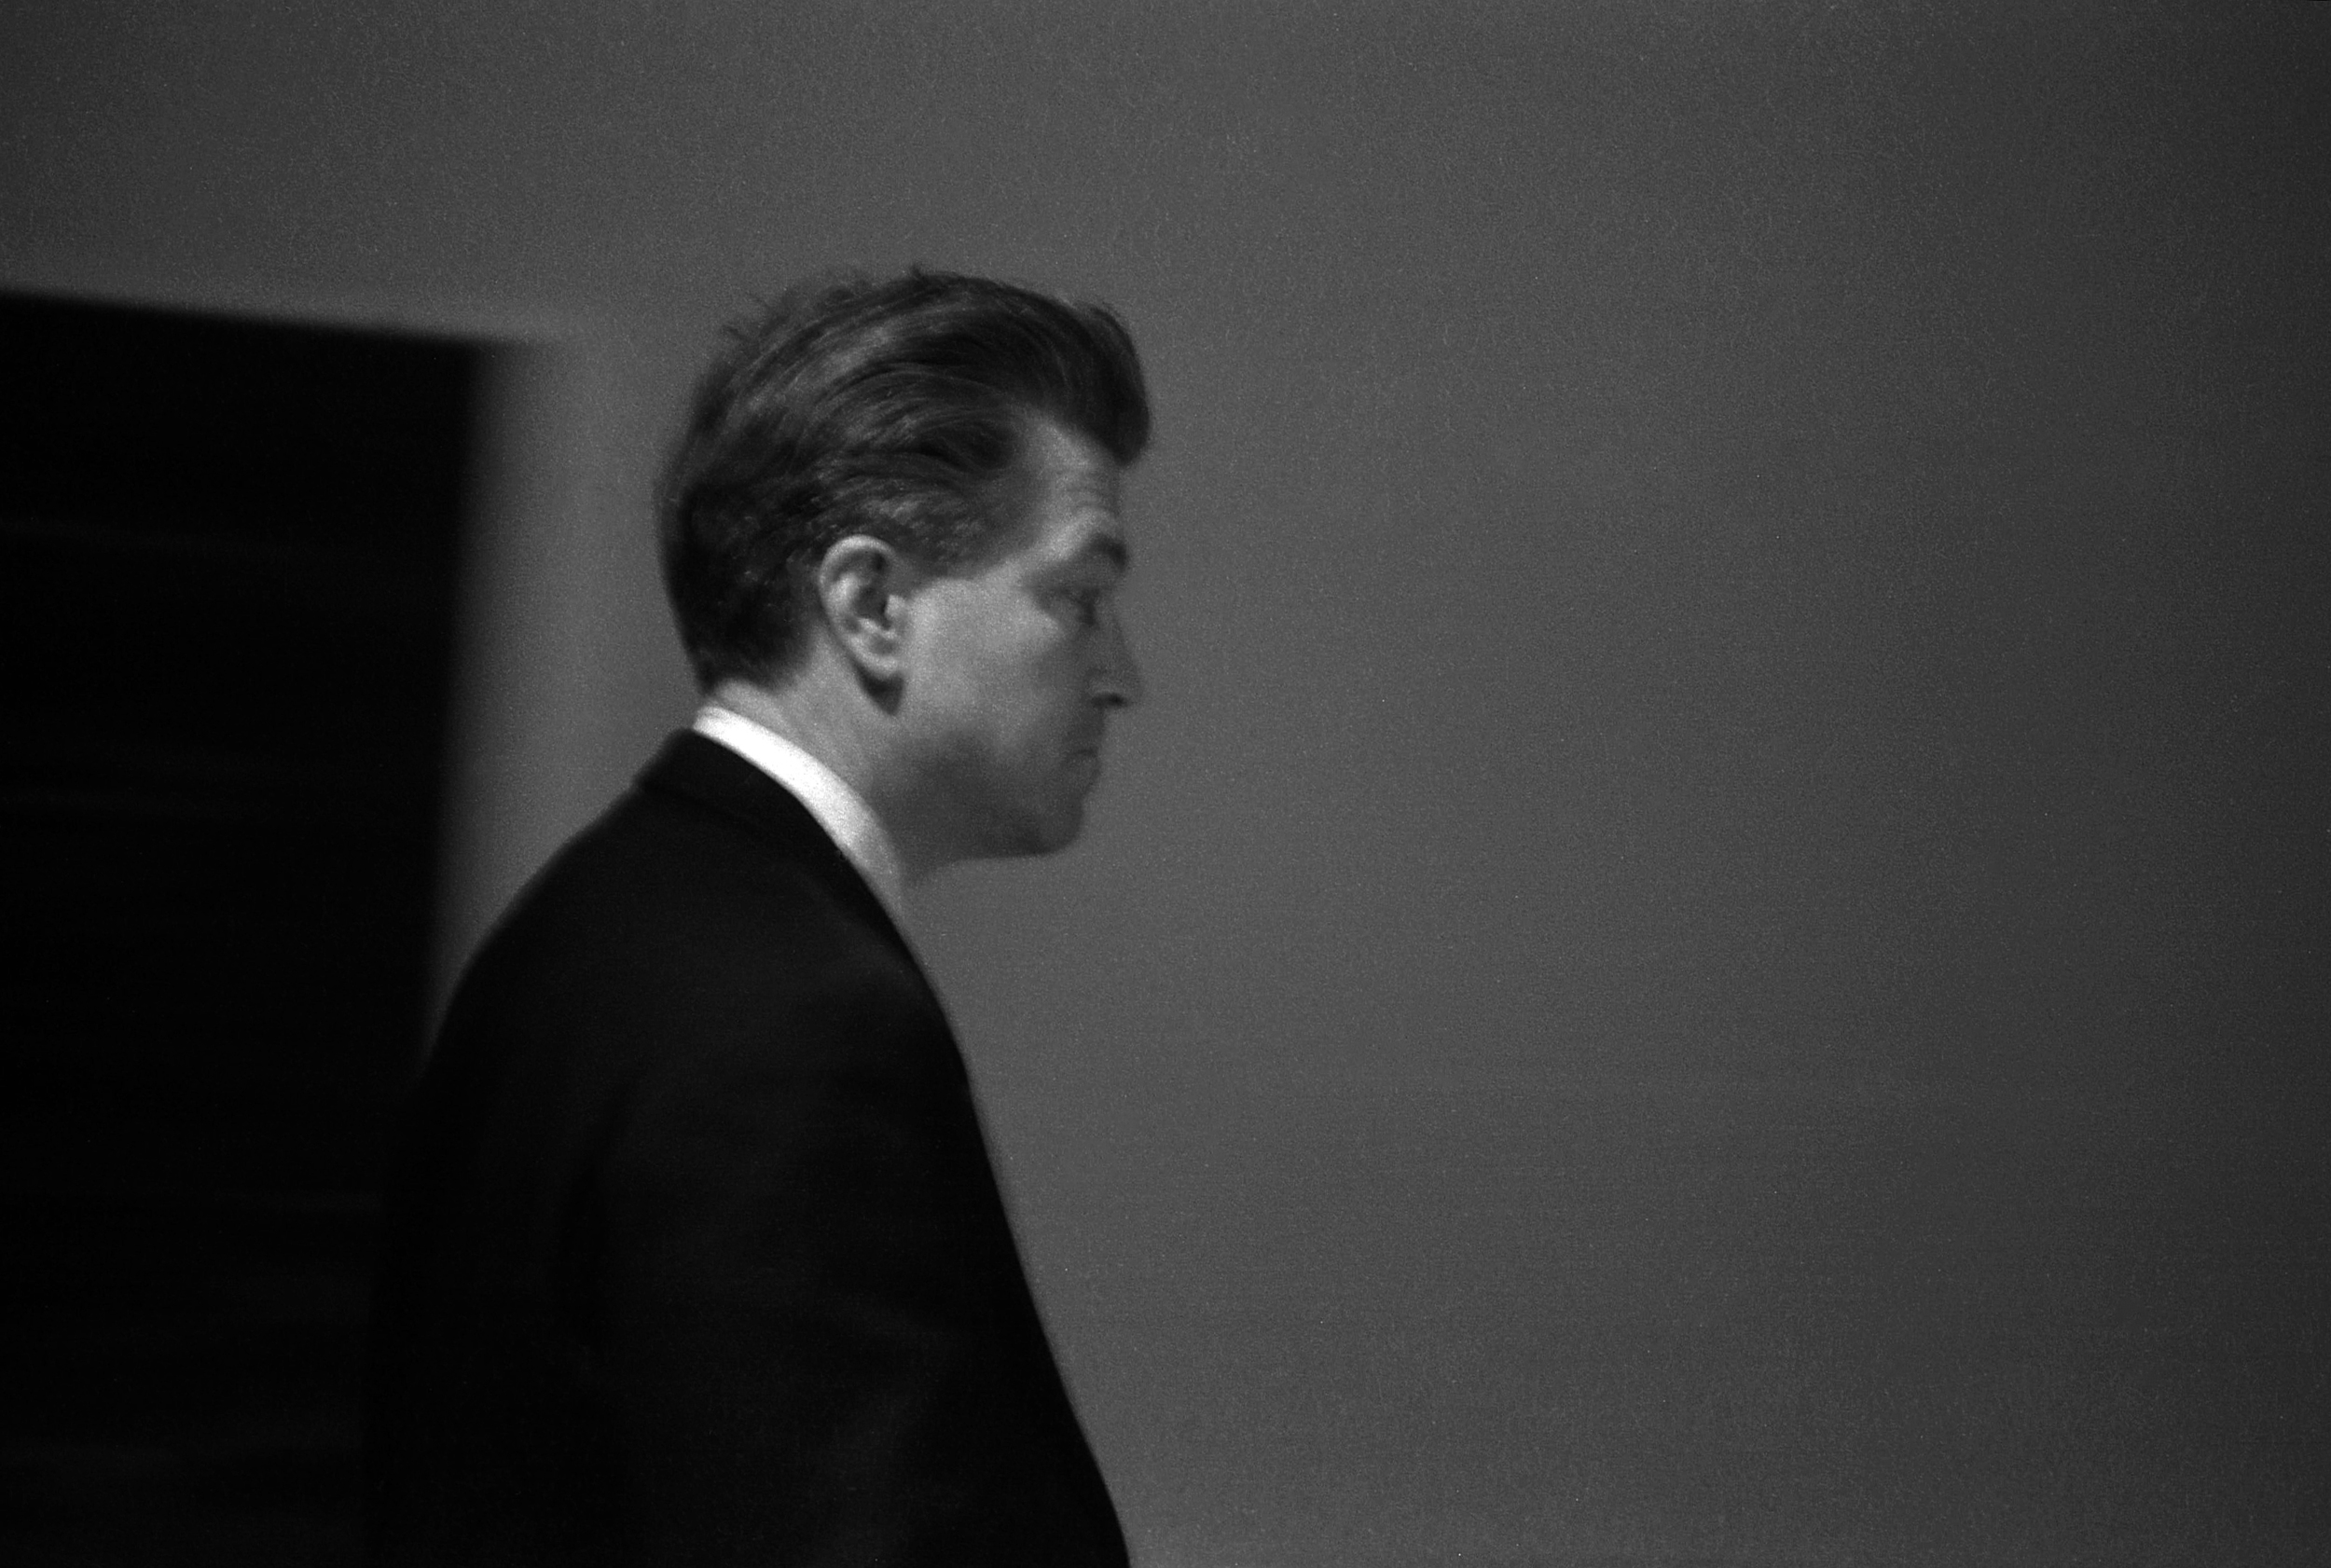 David Lynch. Film maker and Painter